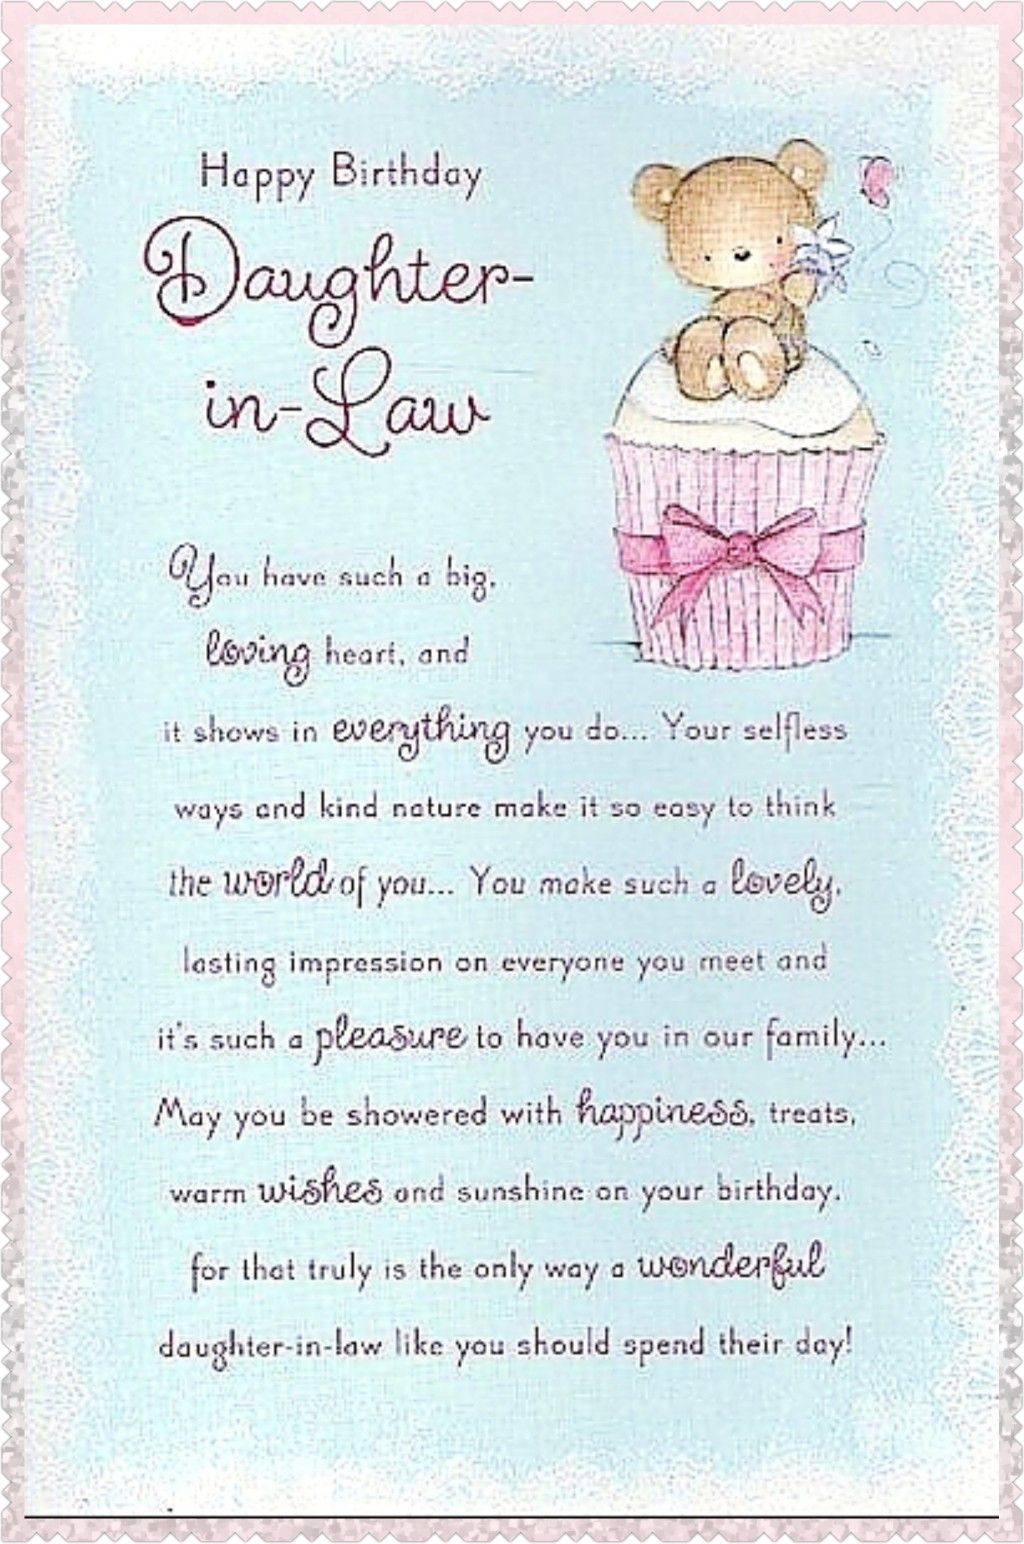 Pin by Astrid Tapia on Birthday Happy birthday daughter